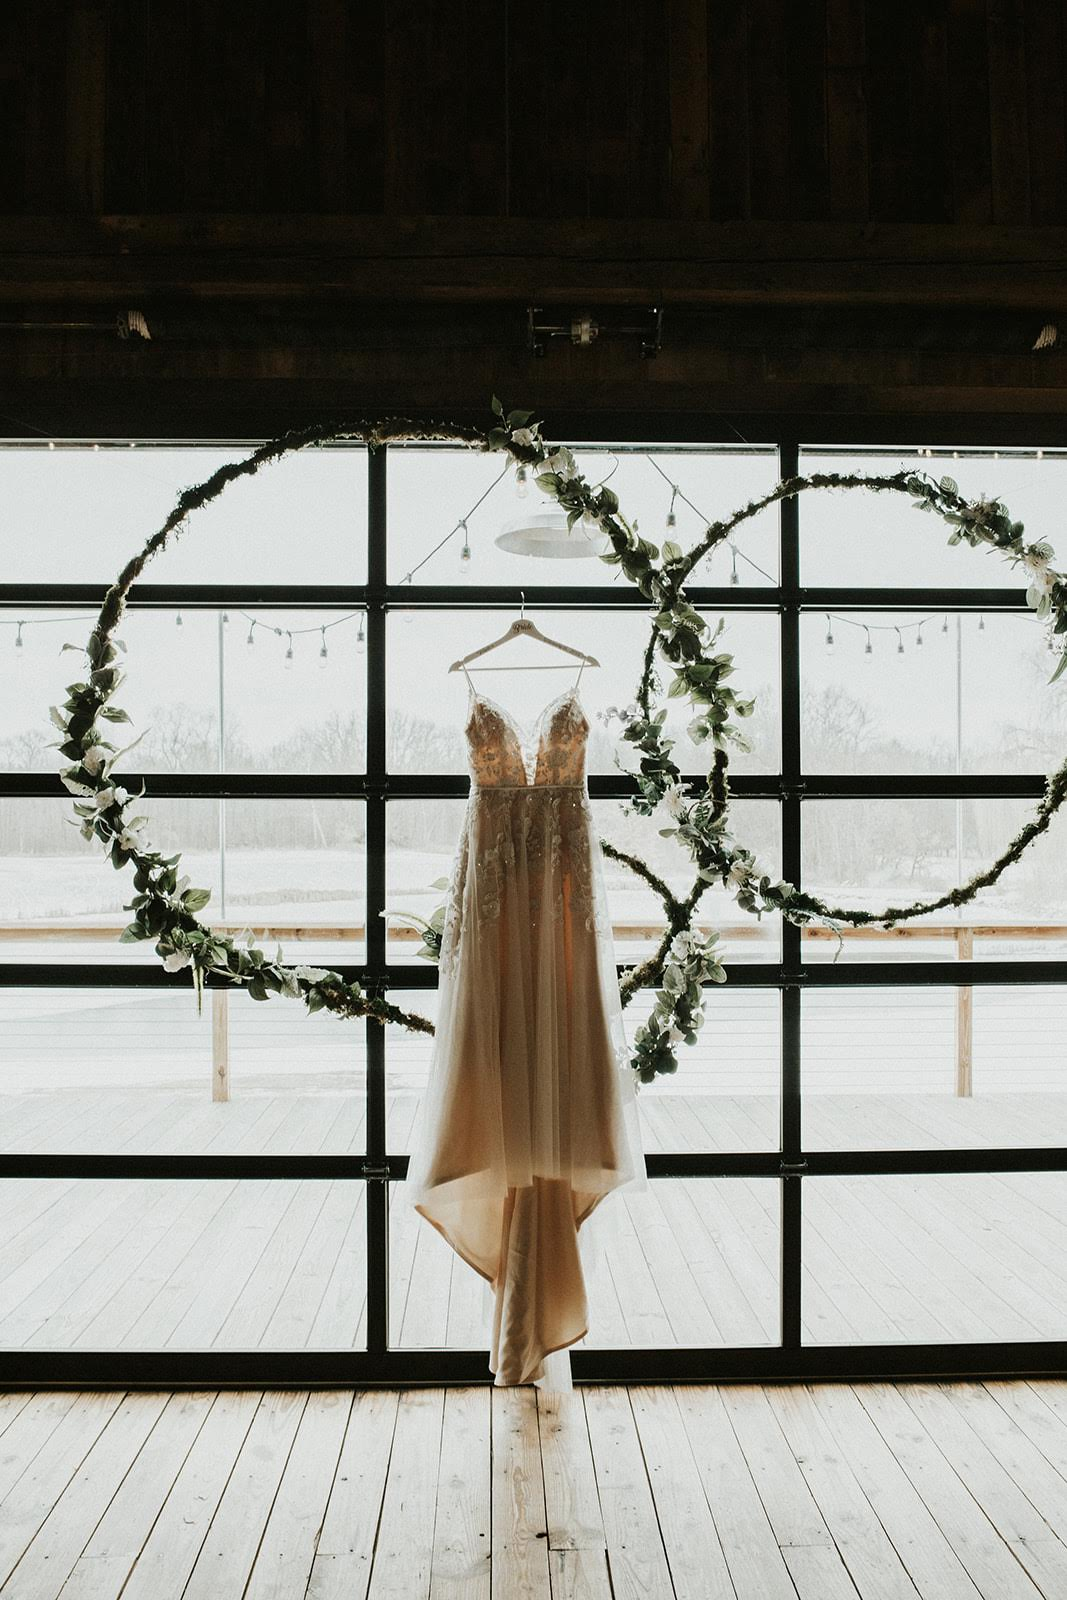 Taylor's gorgeous wedding dress illuminated in the sun, in front of their greenery ceremony backdrop.